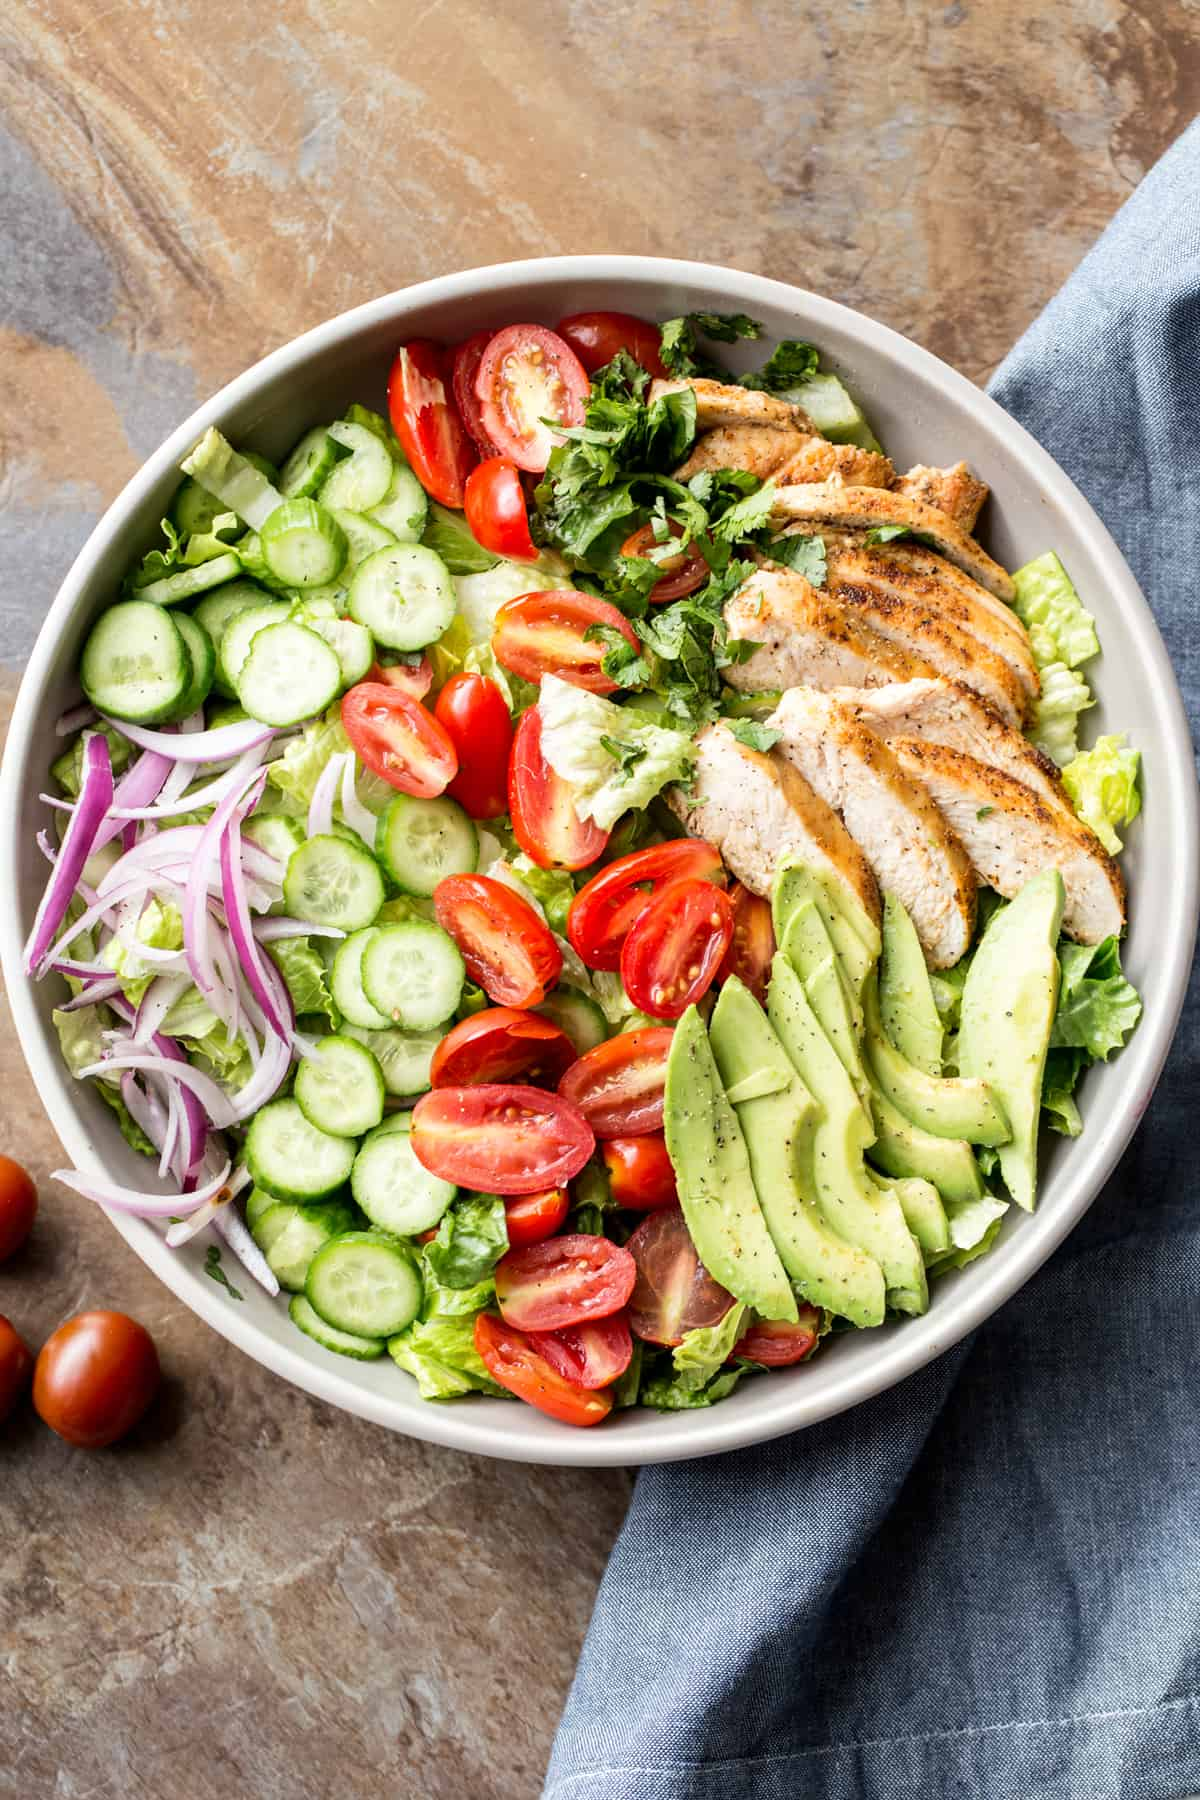 Romaine avocado chicken salad recipe in a bowl. Chicken salad with romaine, cucumbers, and tomatoes.